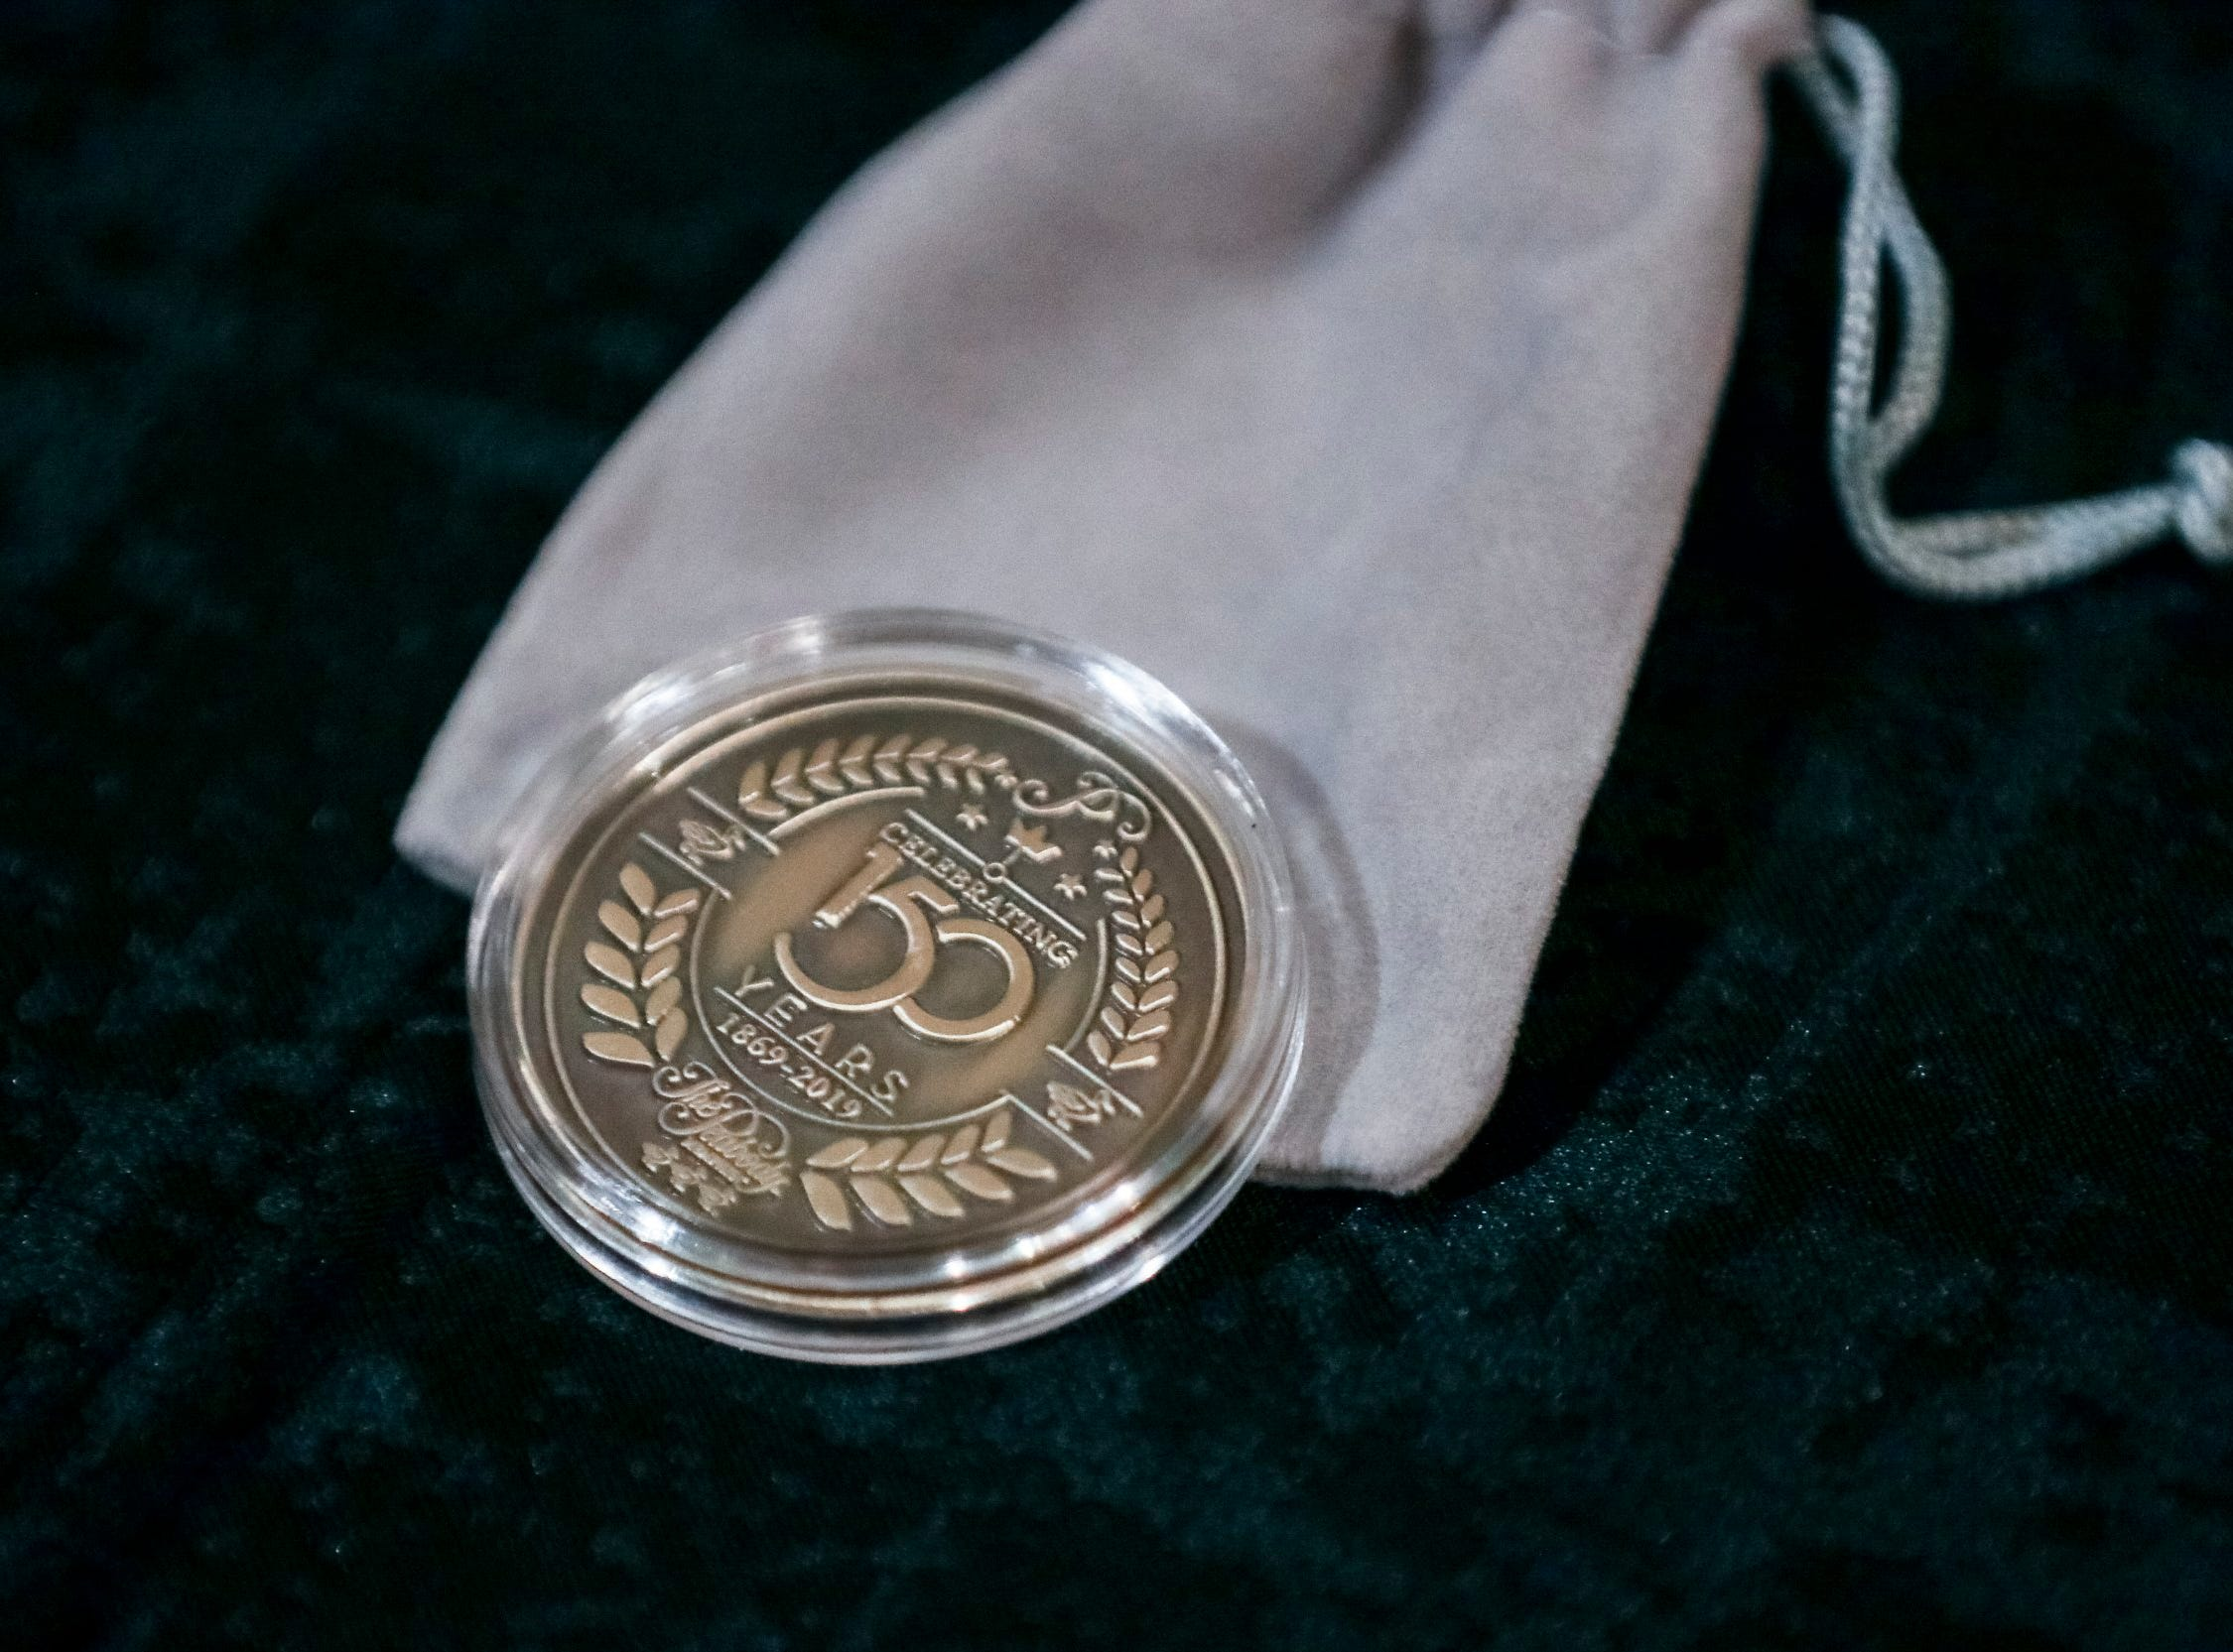 A Peabody 150th Anniversary commemorative coin is seen during The Peabody 150th anniversary media launch party Feb. 6, 2019.